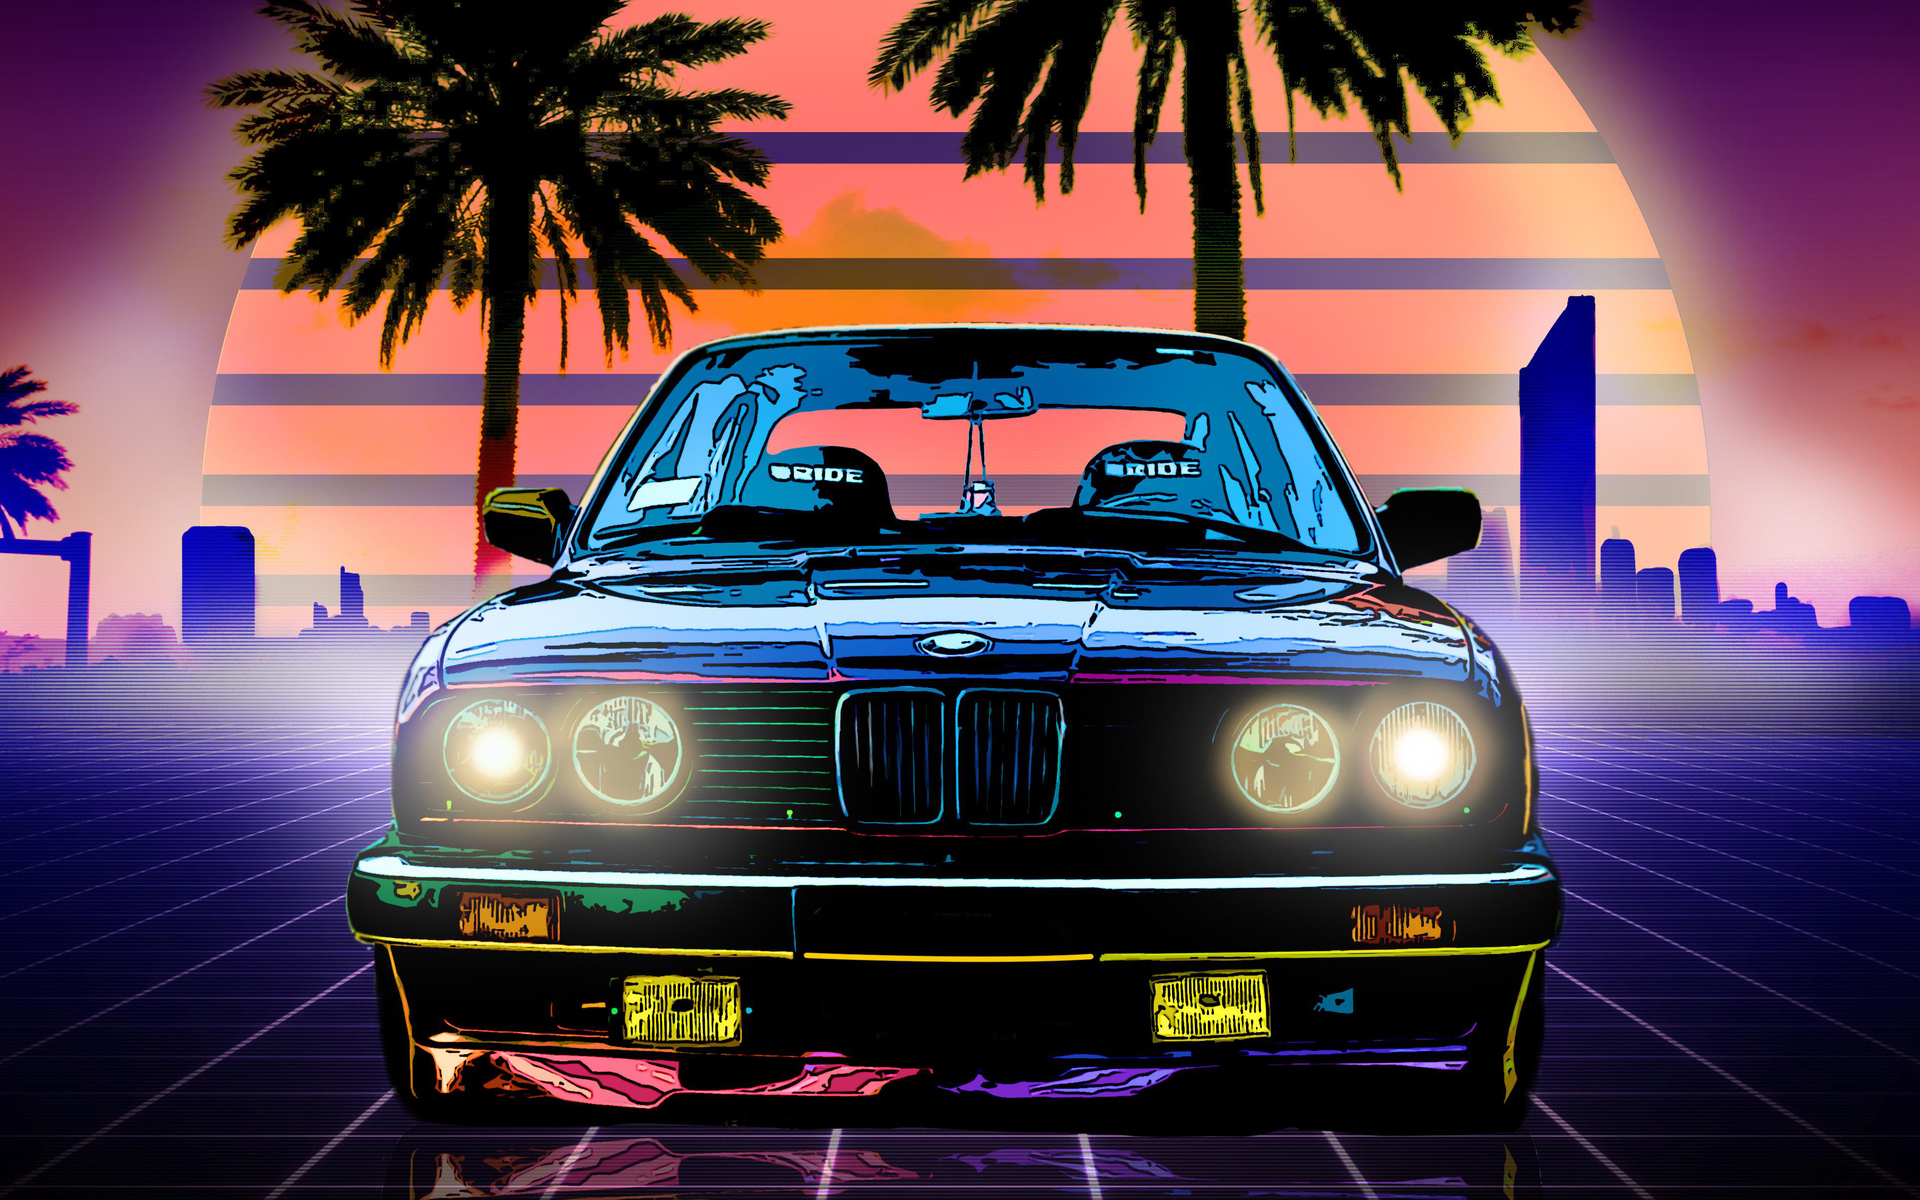 1920x1200 Bmw E30 Digital Art 4k 1080p Resolution Hd 4k Wallpapers Images Backgrounds Photos And Pictures